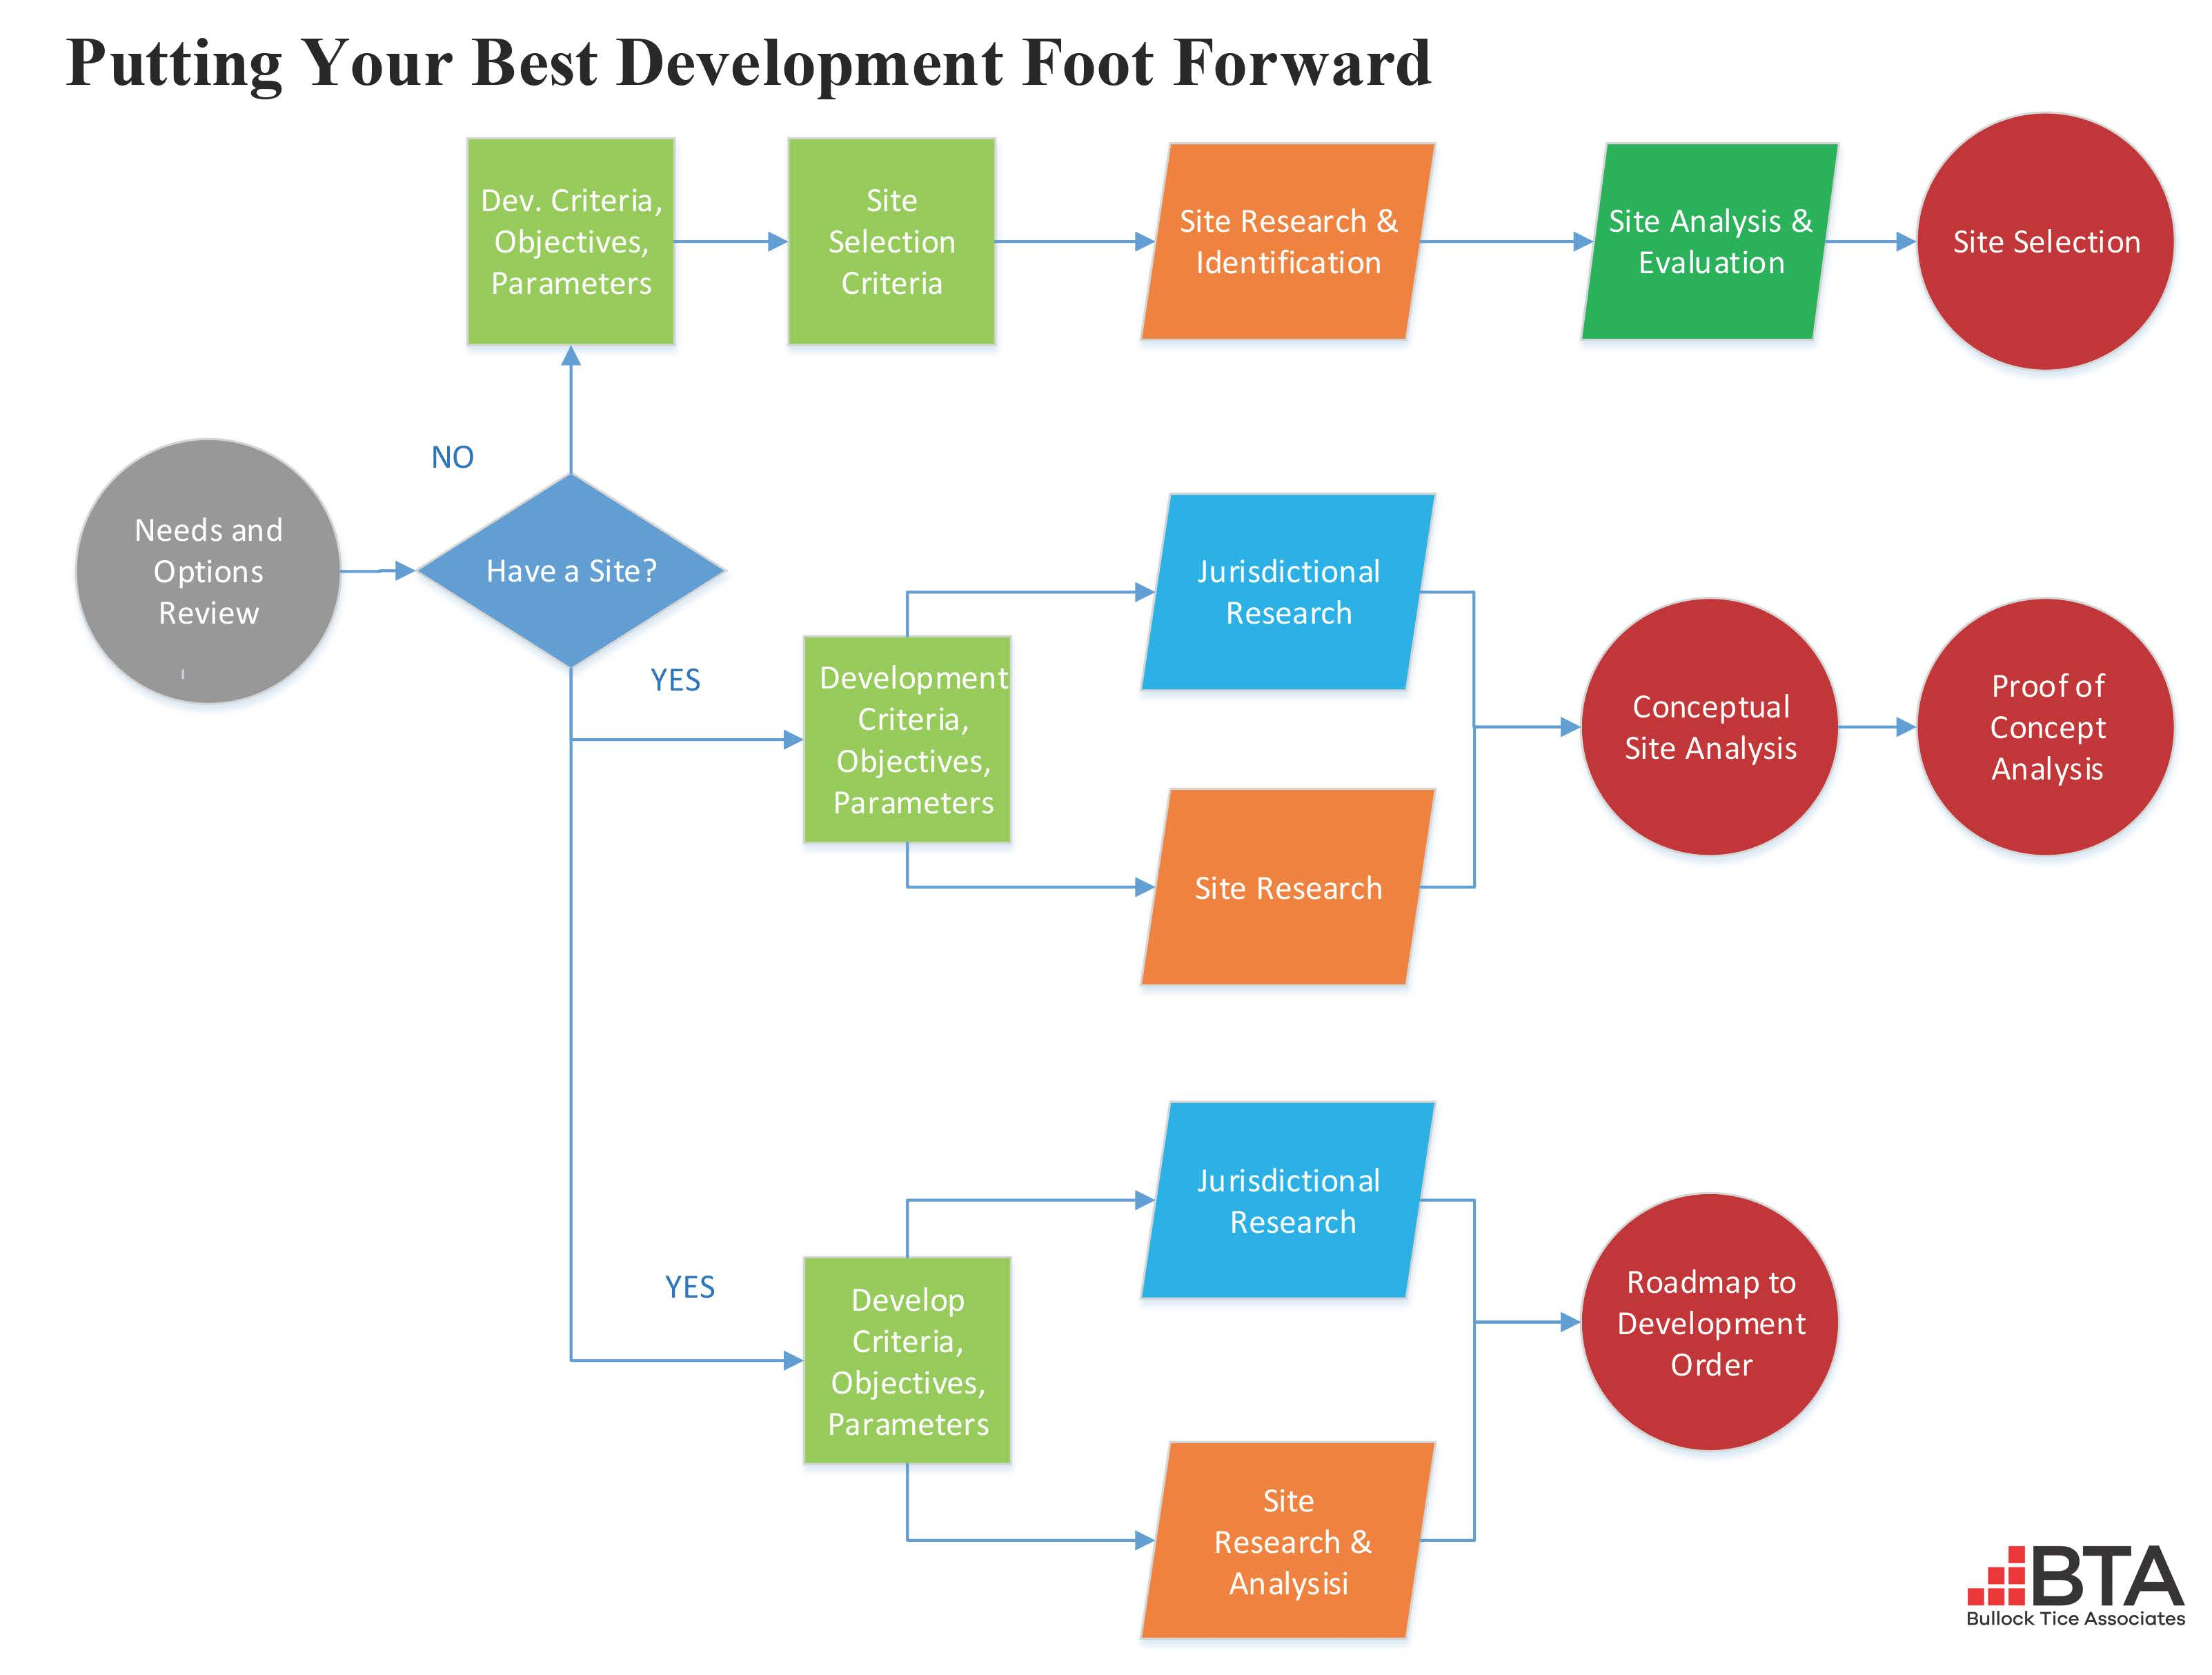 putting-your-best-development-foot-forward-drawing3